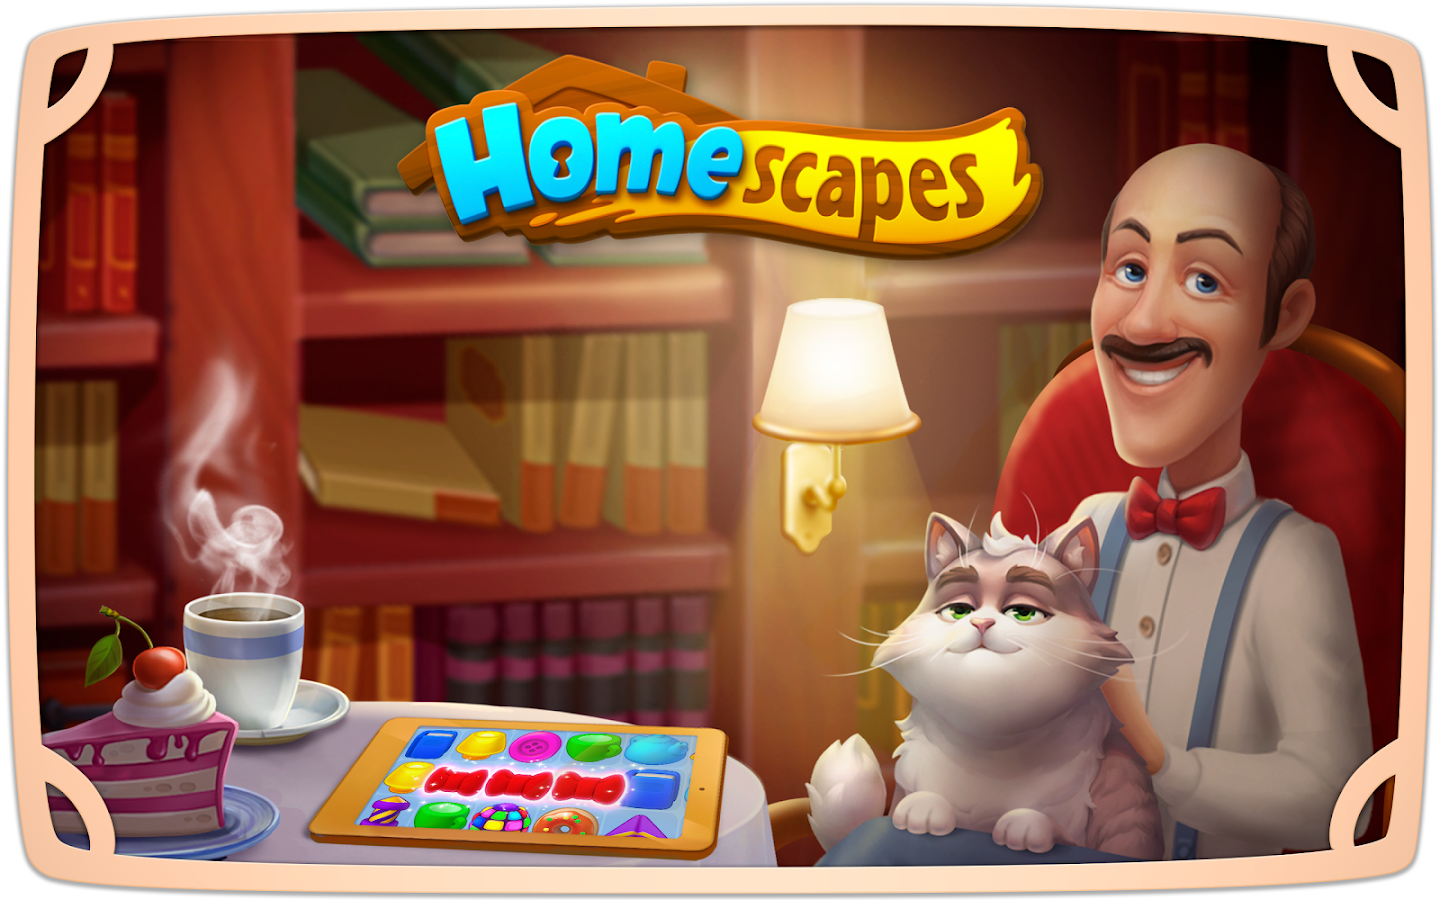 Interior Home Scapes Homescapes Android Apps On Google Play